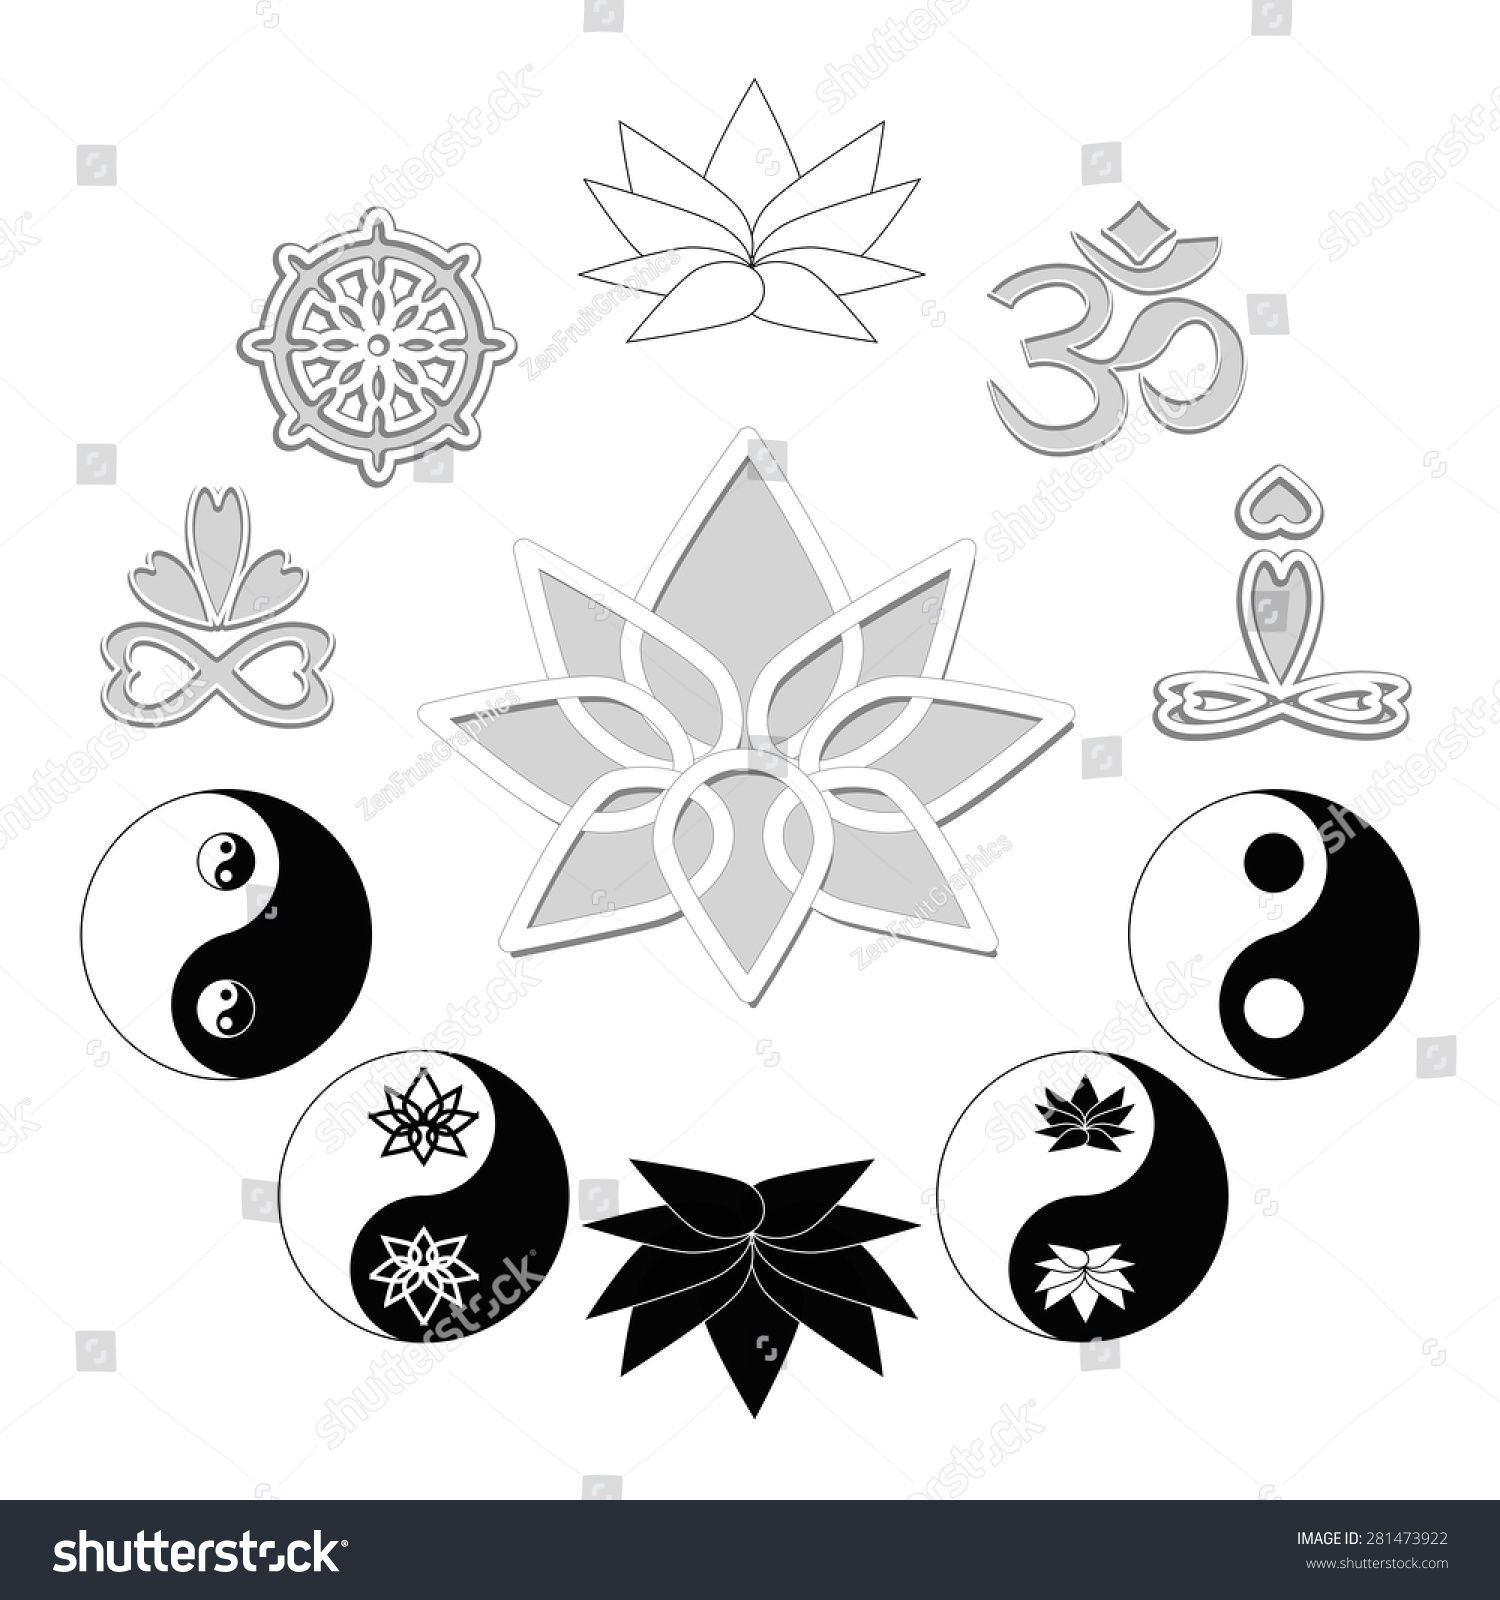 Yoga Symbols Zen Buddhism Icons Set Stock Vector Royalty Free